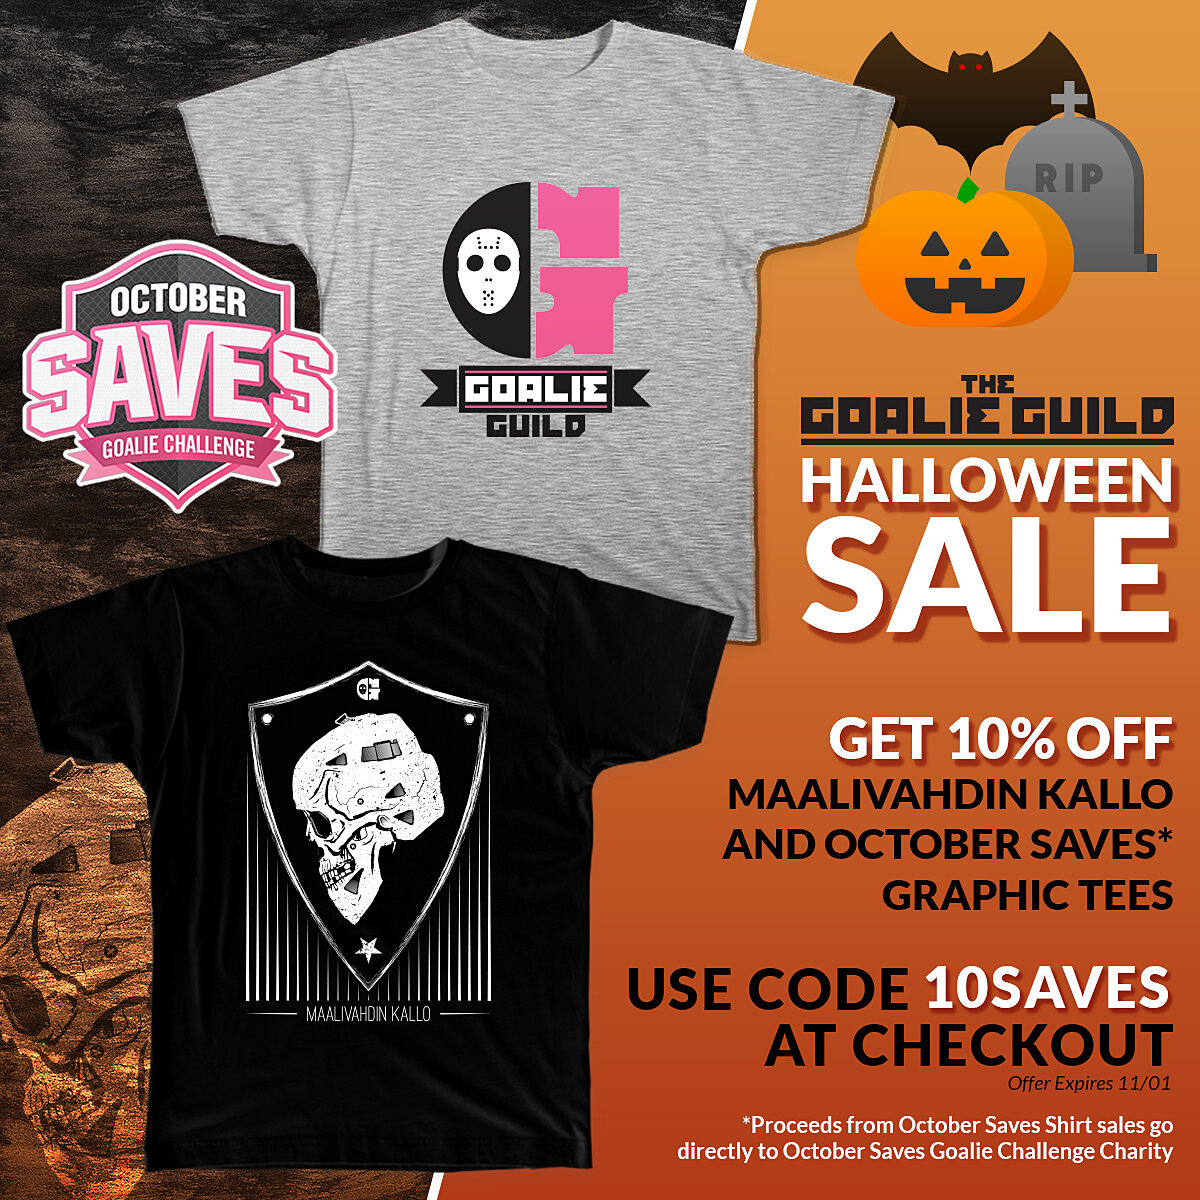 The Goalie Guild Halloween Sale Ad